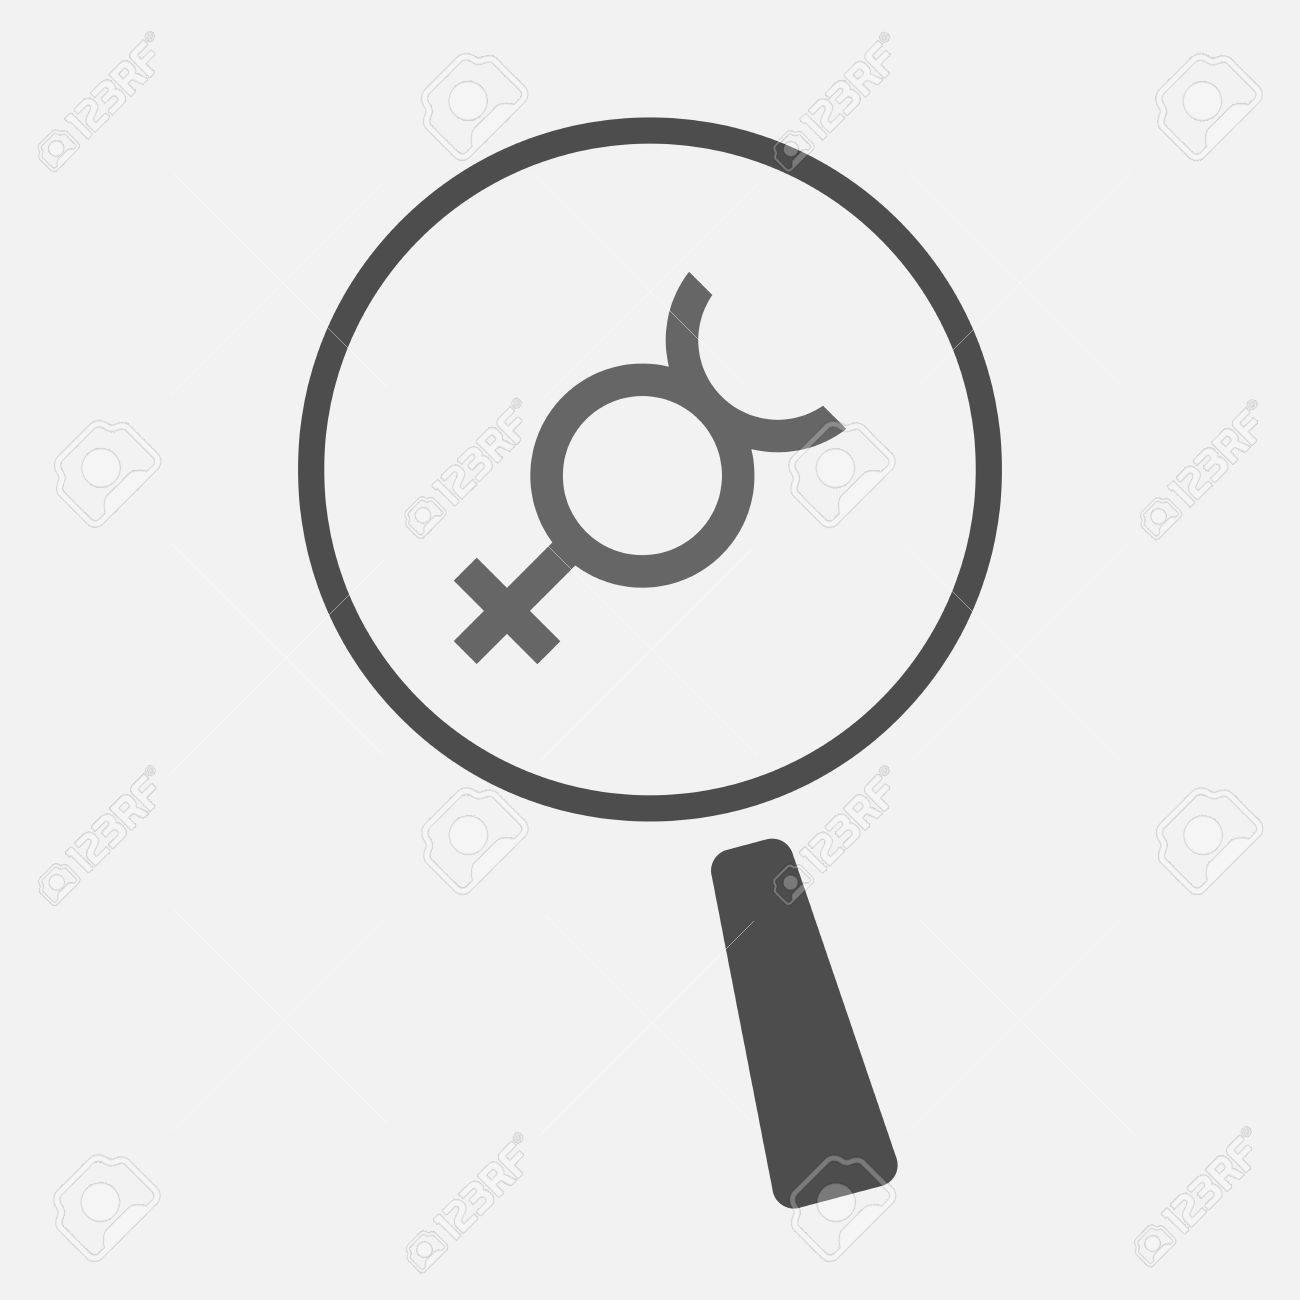 Illustration Of An Isolated Line Art Magnifier Icon With The